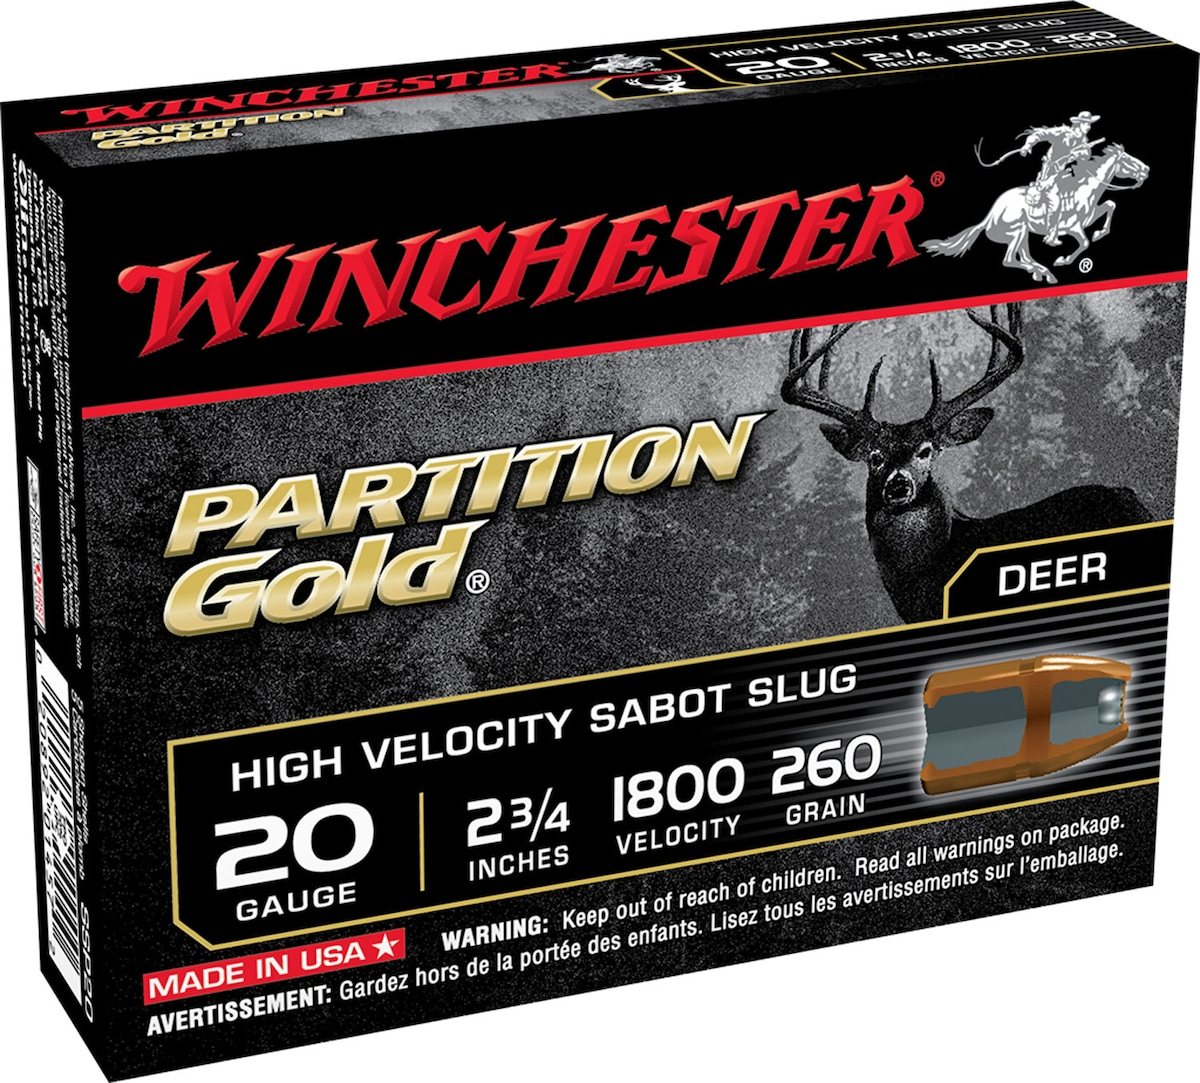 WINCHESTER PARTITION GOLD